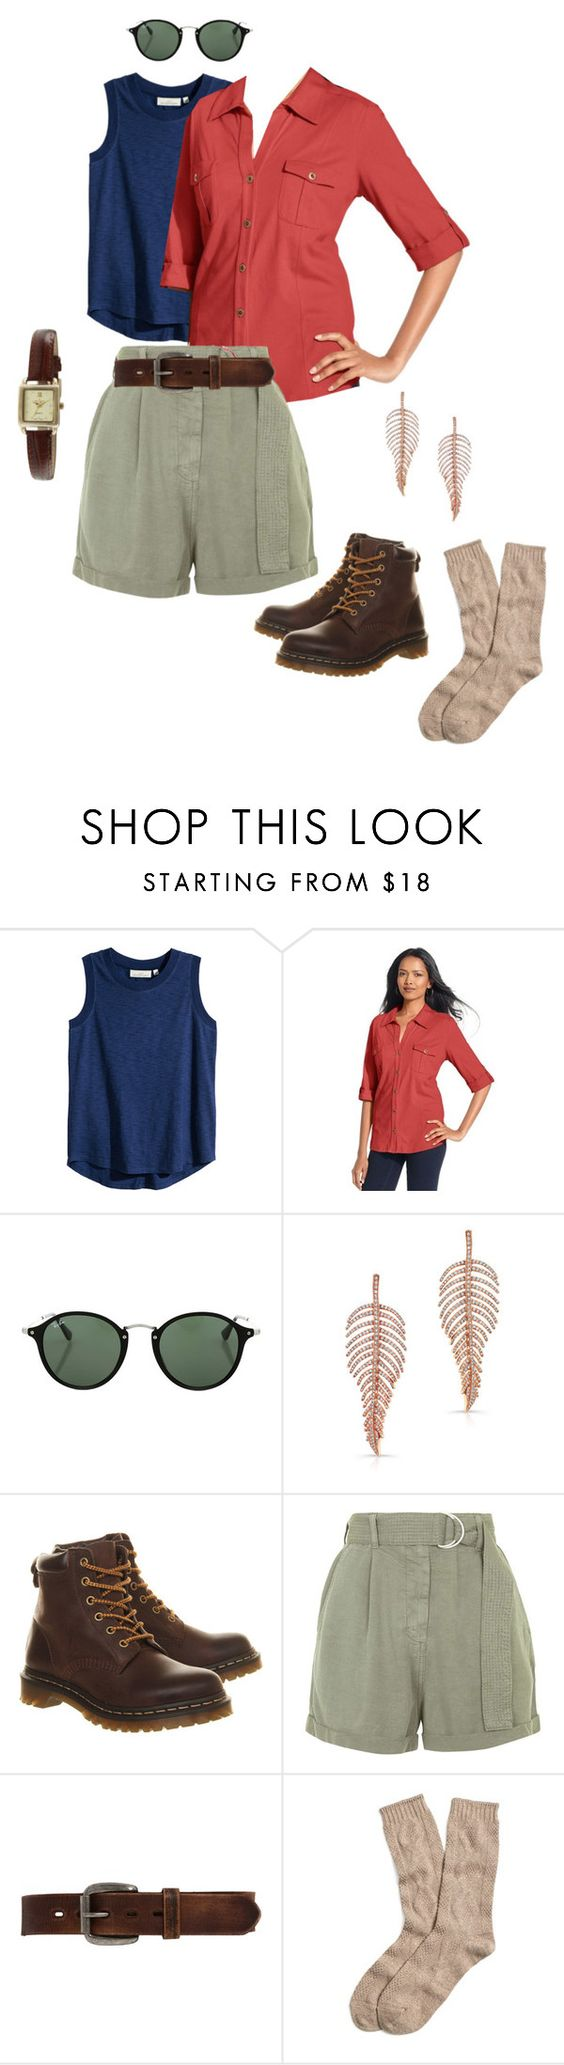 """""""Costume: Dr. Ellie Sattler"""" by rebeccalange ❤ liked on Polyvore featuring H&M, Style & Co., Ray-Ban, Dr. Martens, Topshop, Bed Stu, Brooks Brothers and Peugeot"""